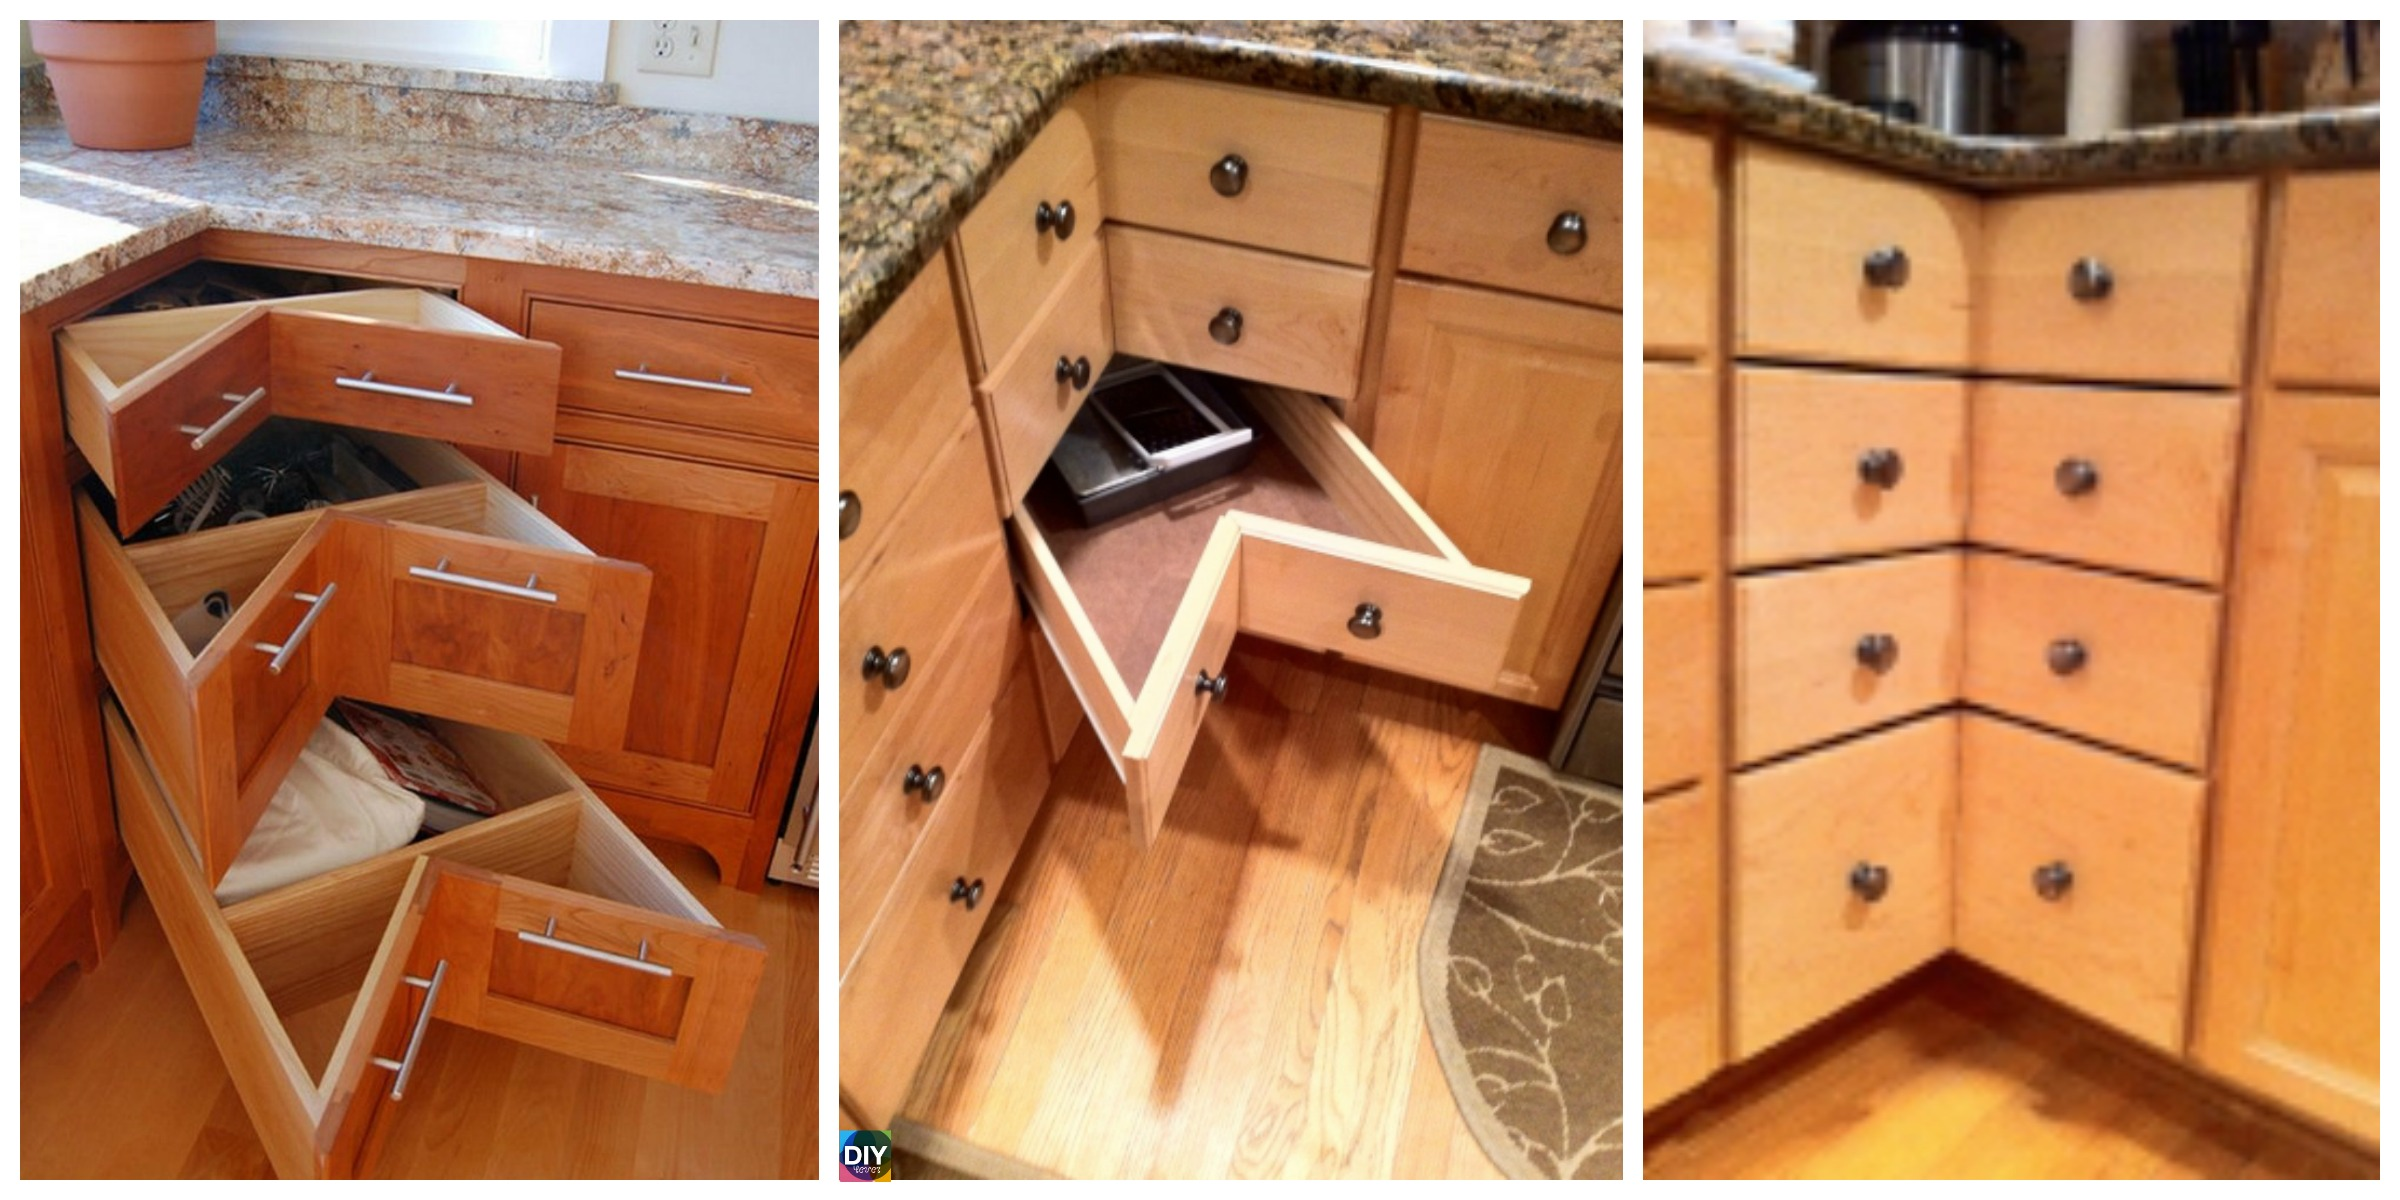 DIY Cabinet Drawer Tutorial – For Corner